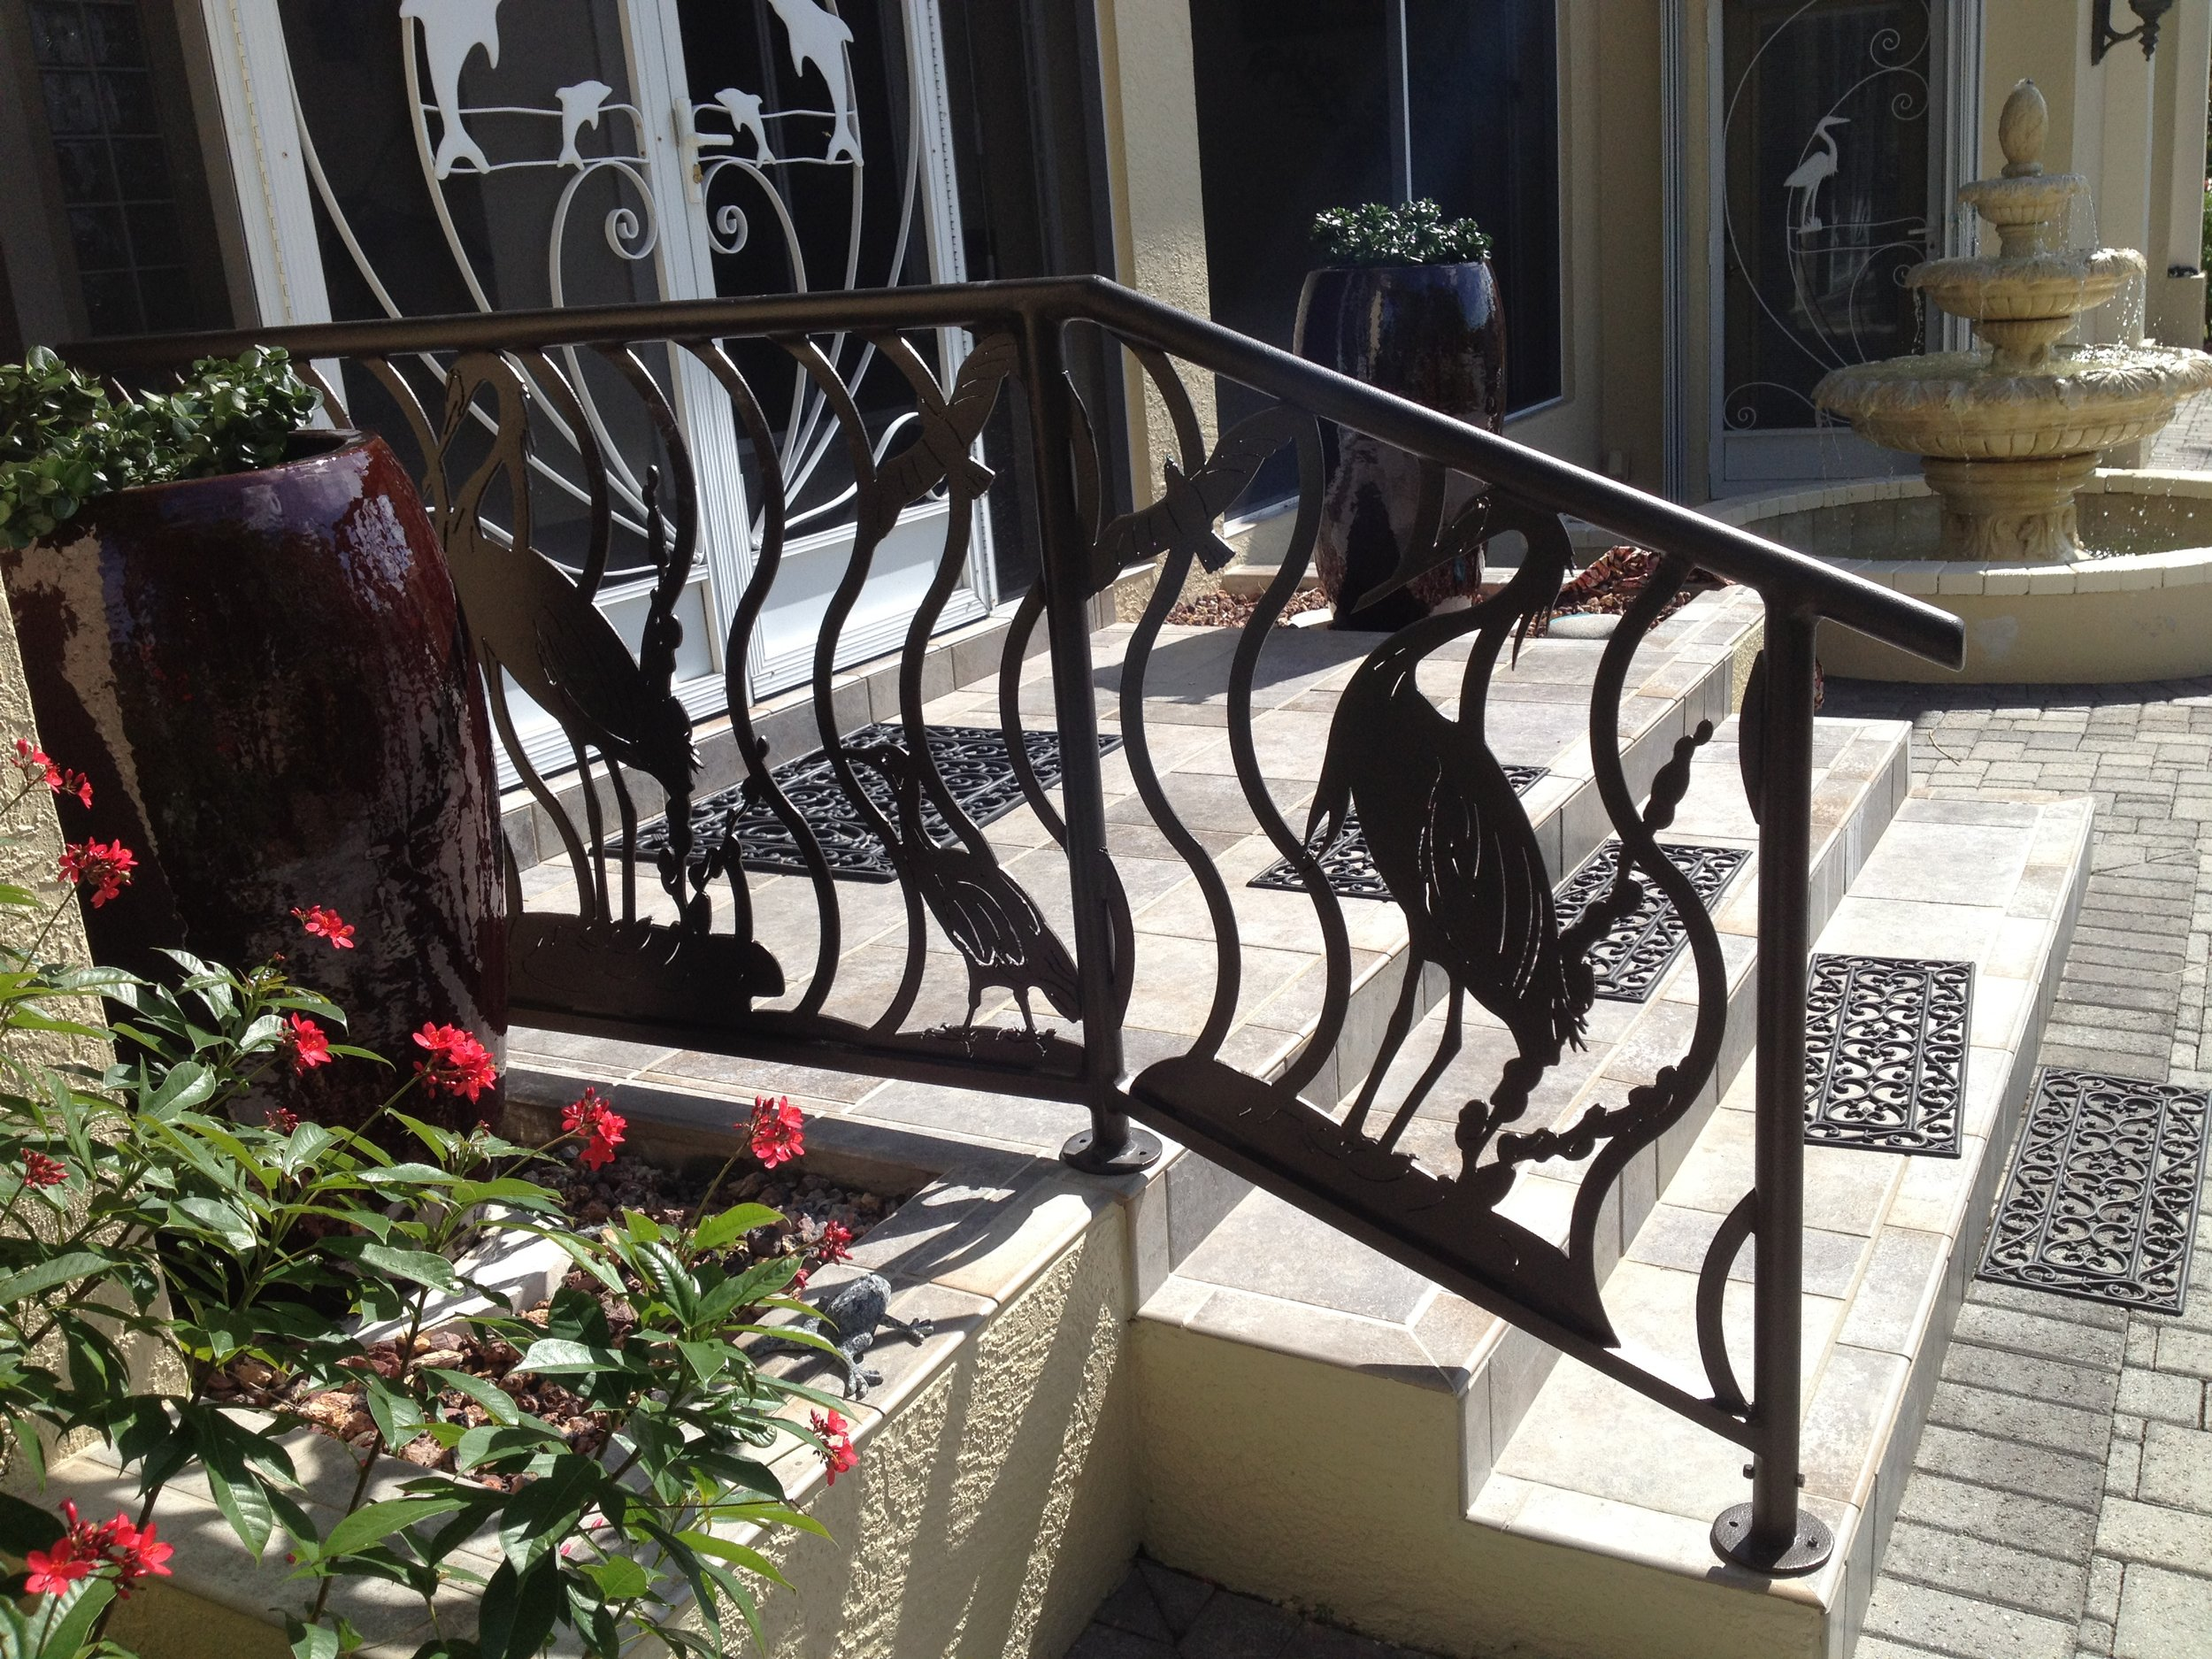 25A FRONT STEP RAILING 2.JPG